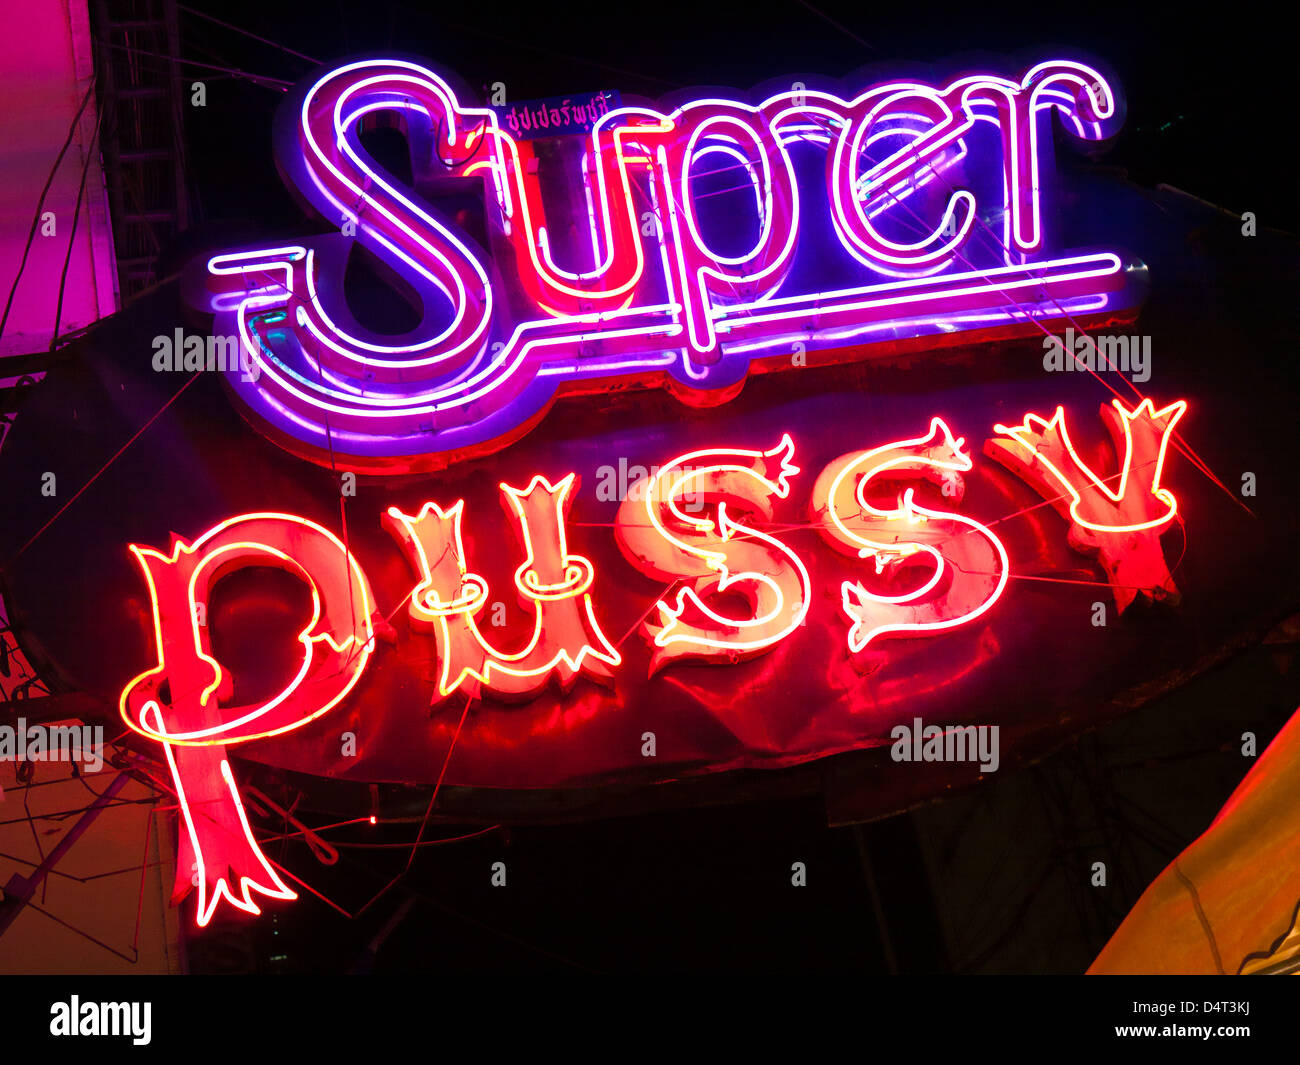 super pussy neon sign stock photo: 54619478 - alamy